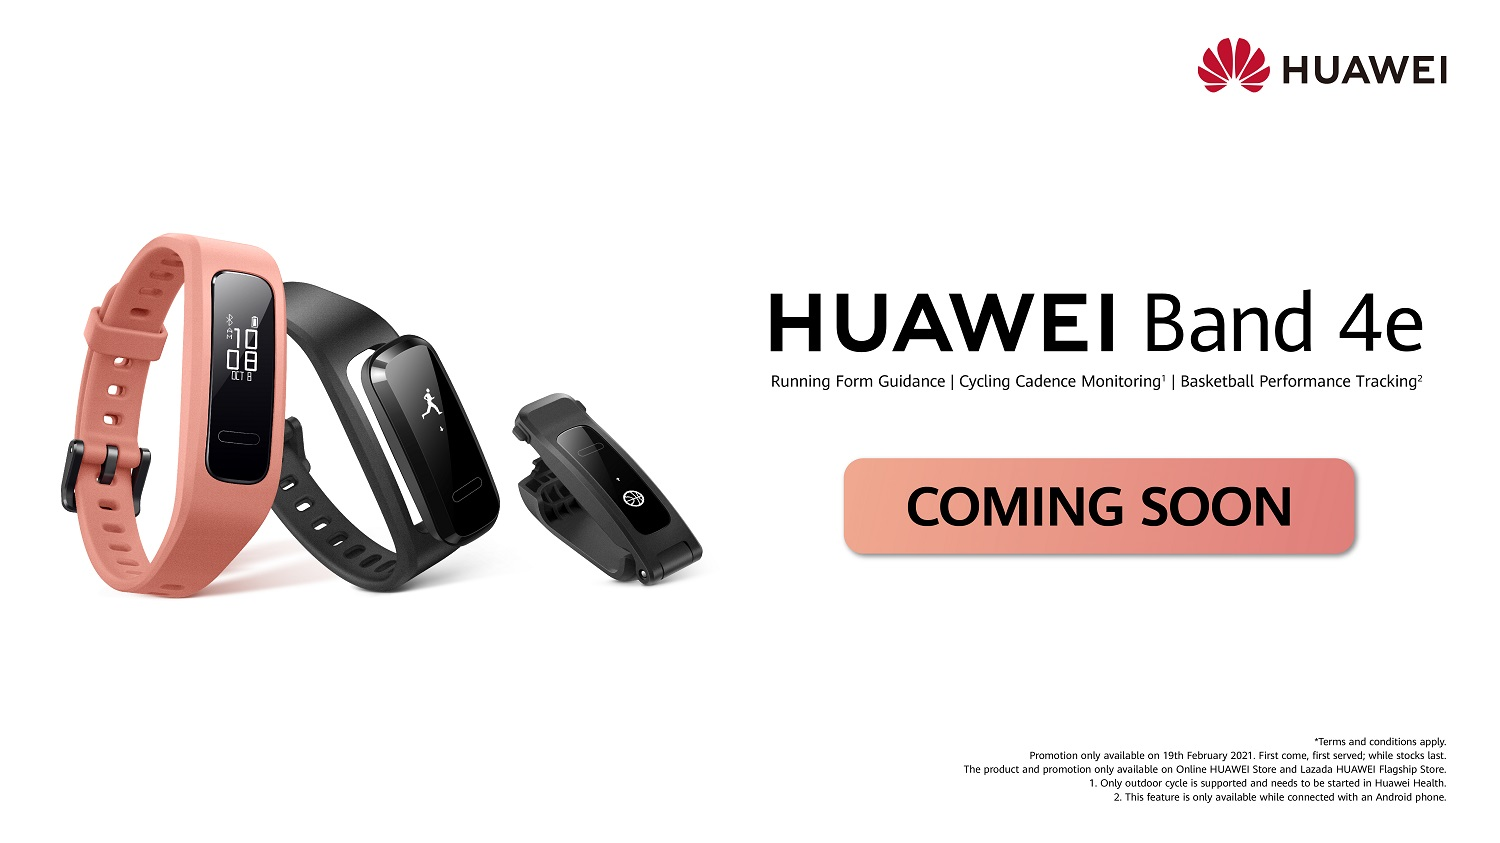 The All-New HUAWEI Band 4e is Coming Soon